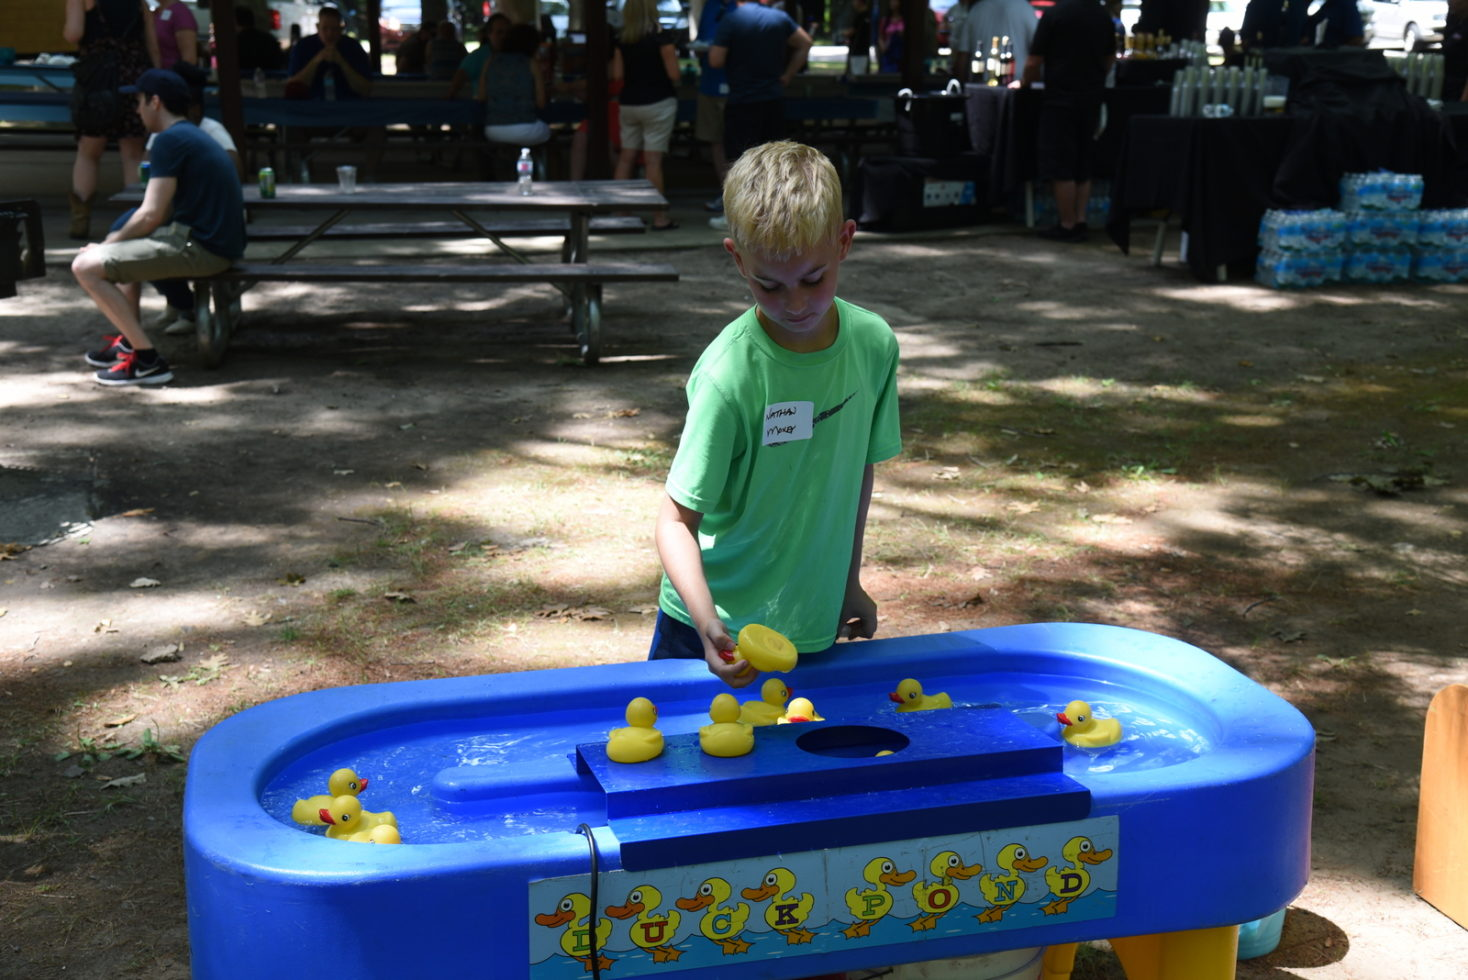 boy playing duck pond game